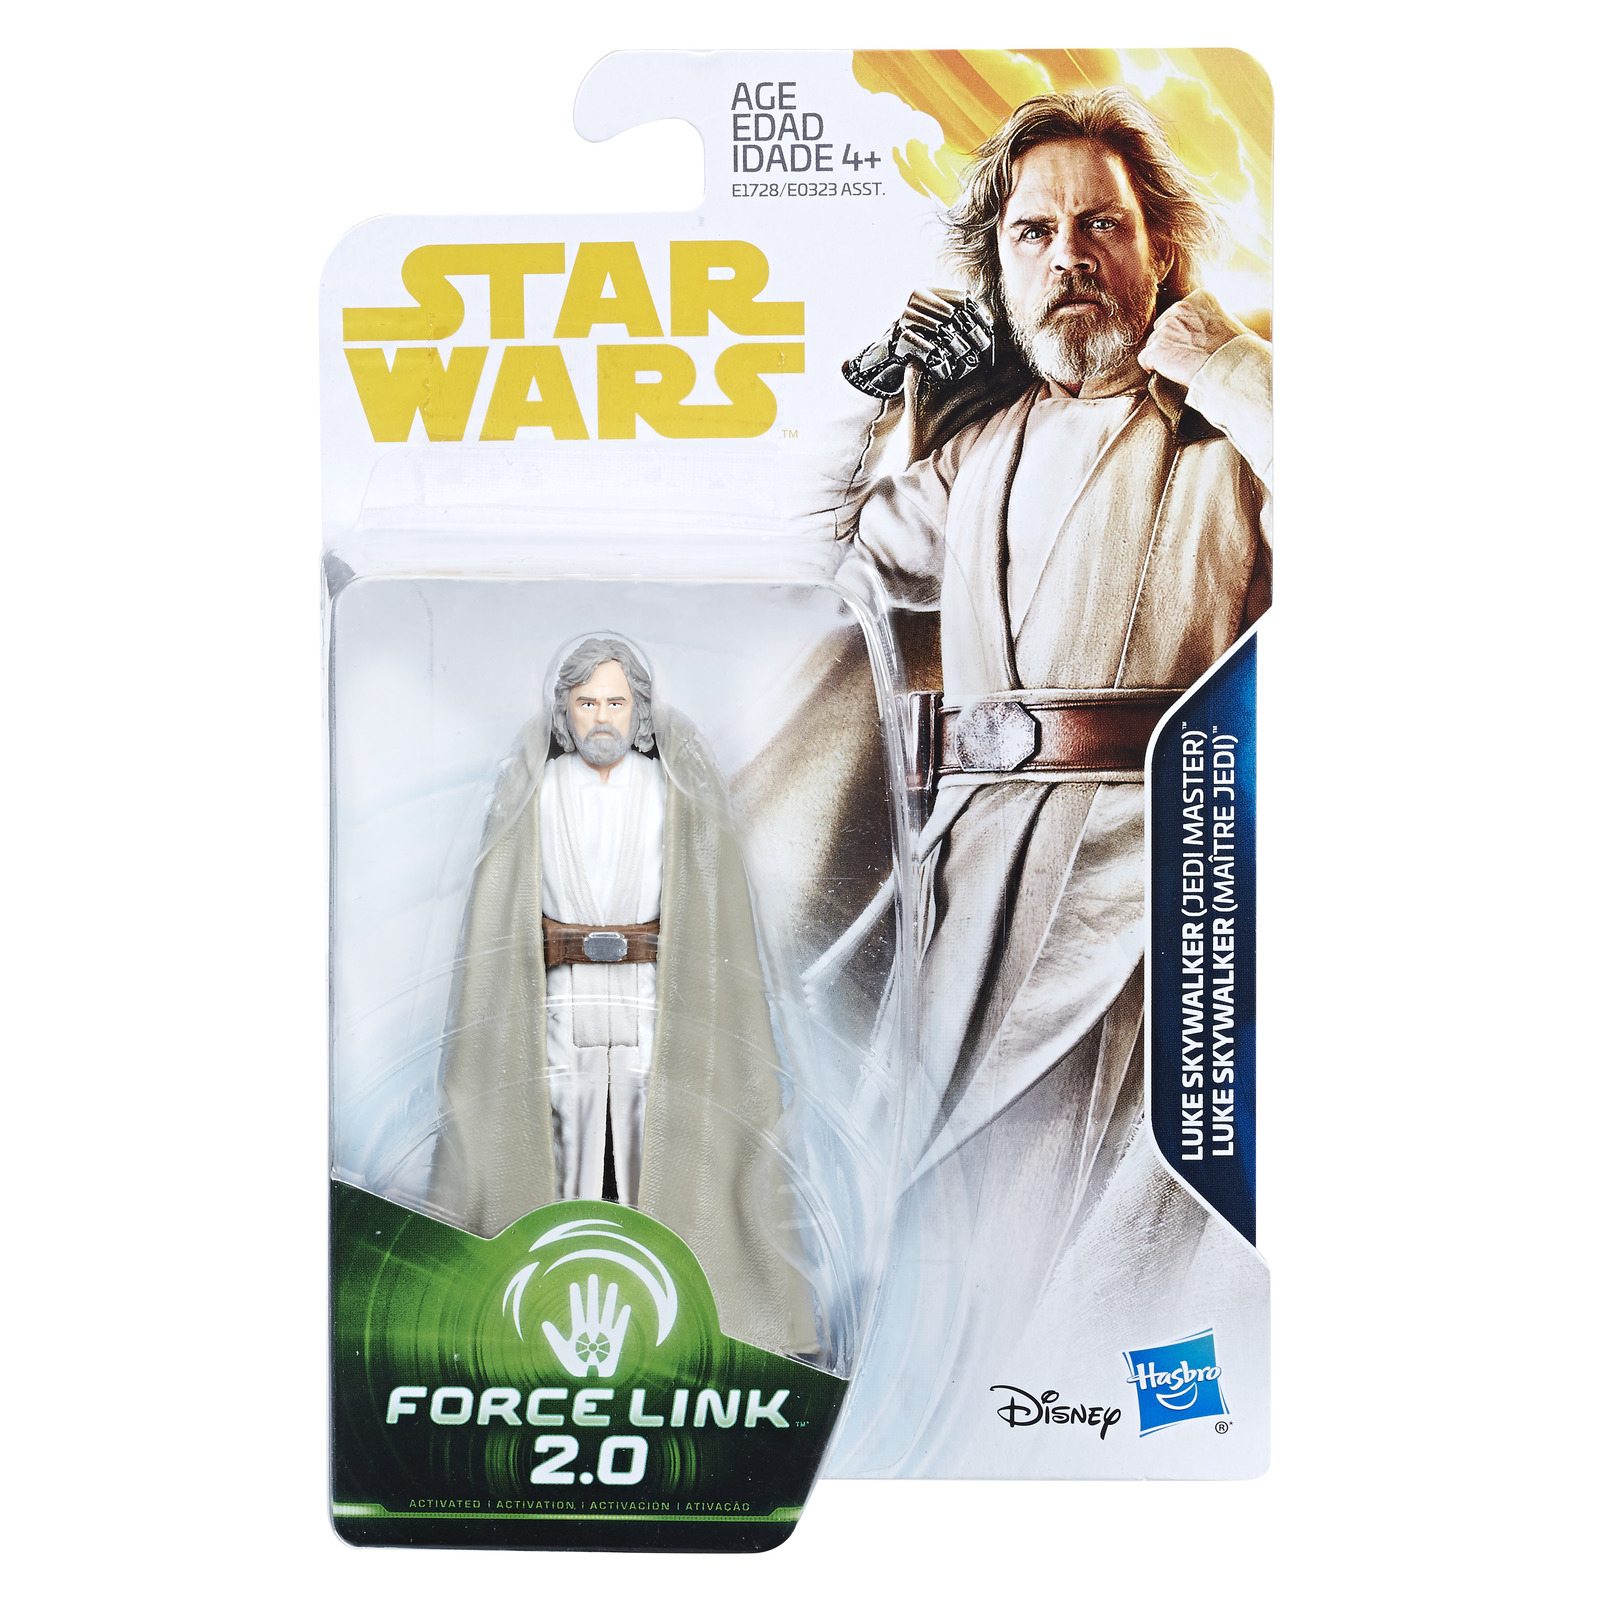 Star War: Force Link 2.0 Figure - Luke Skywalker (Jedi Master) image